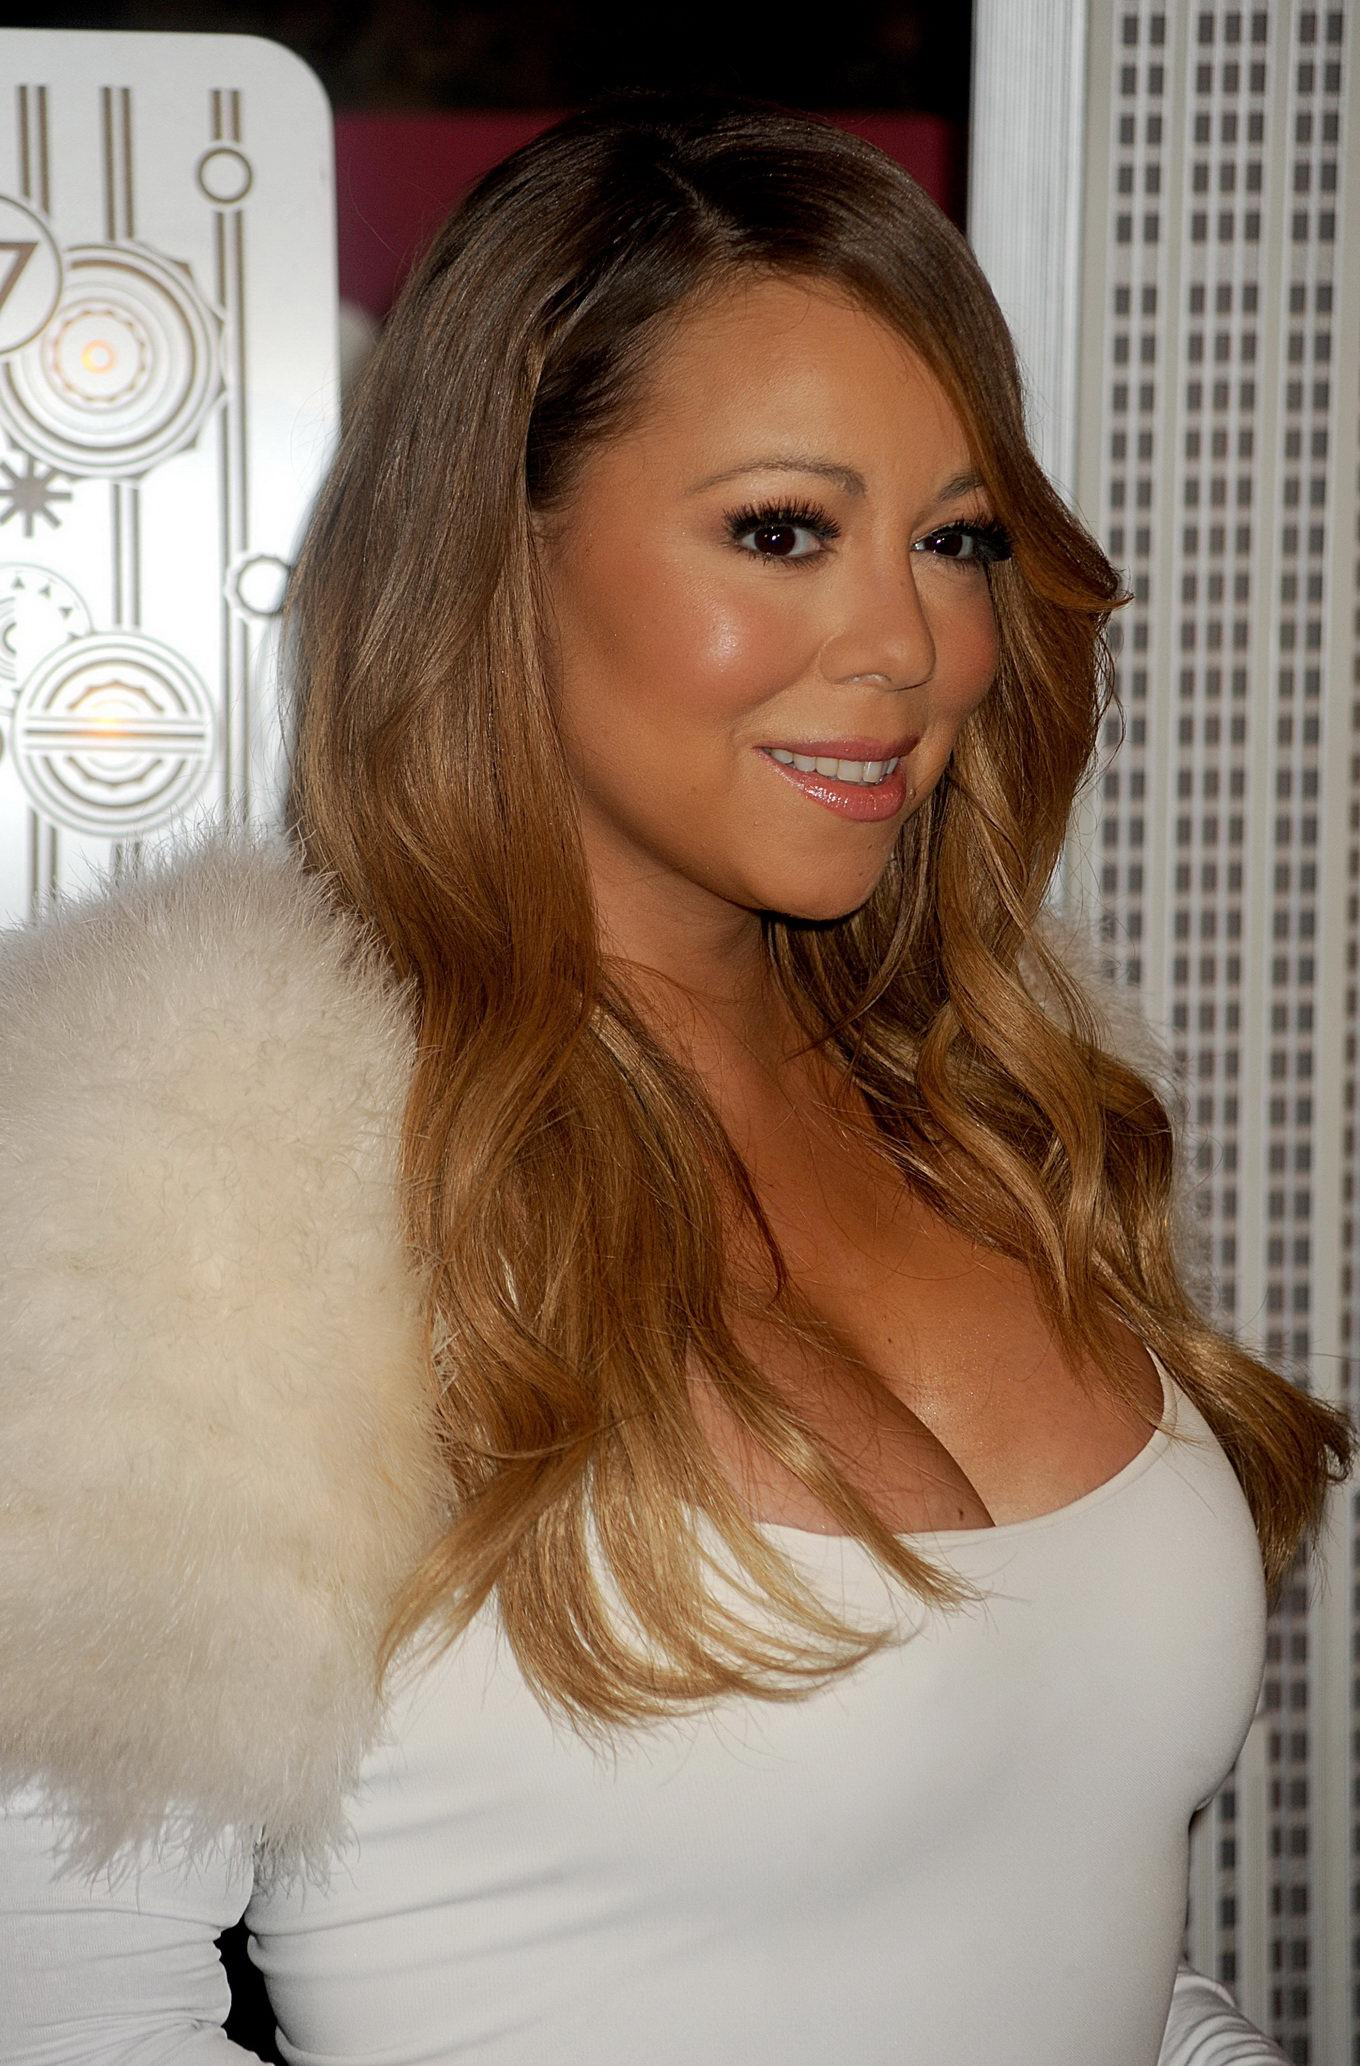 Matchless Mariah carey big cleavage were